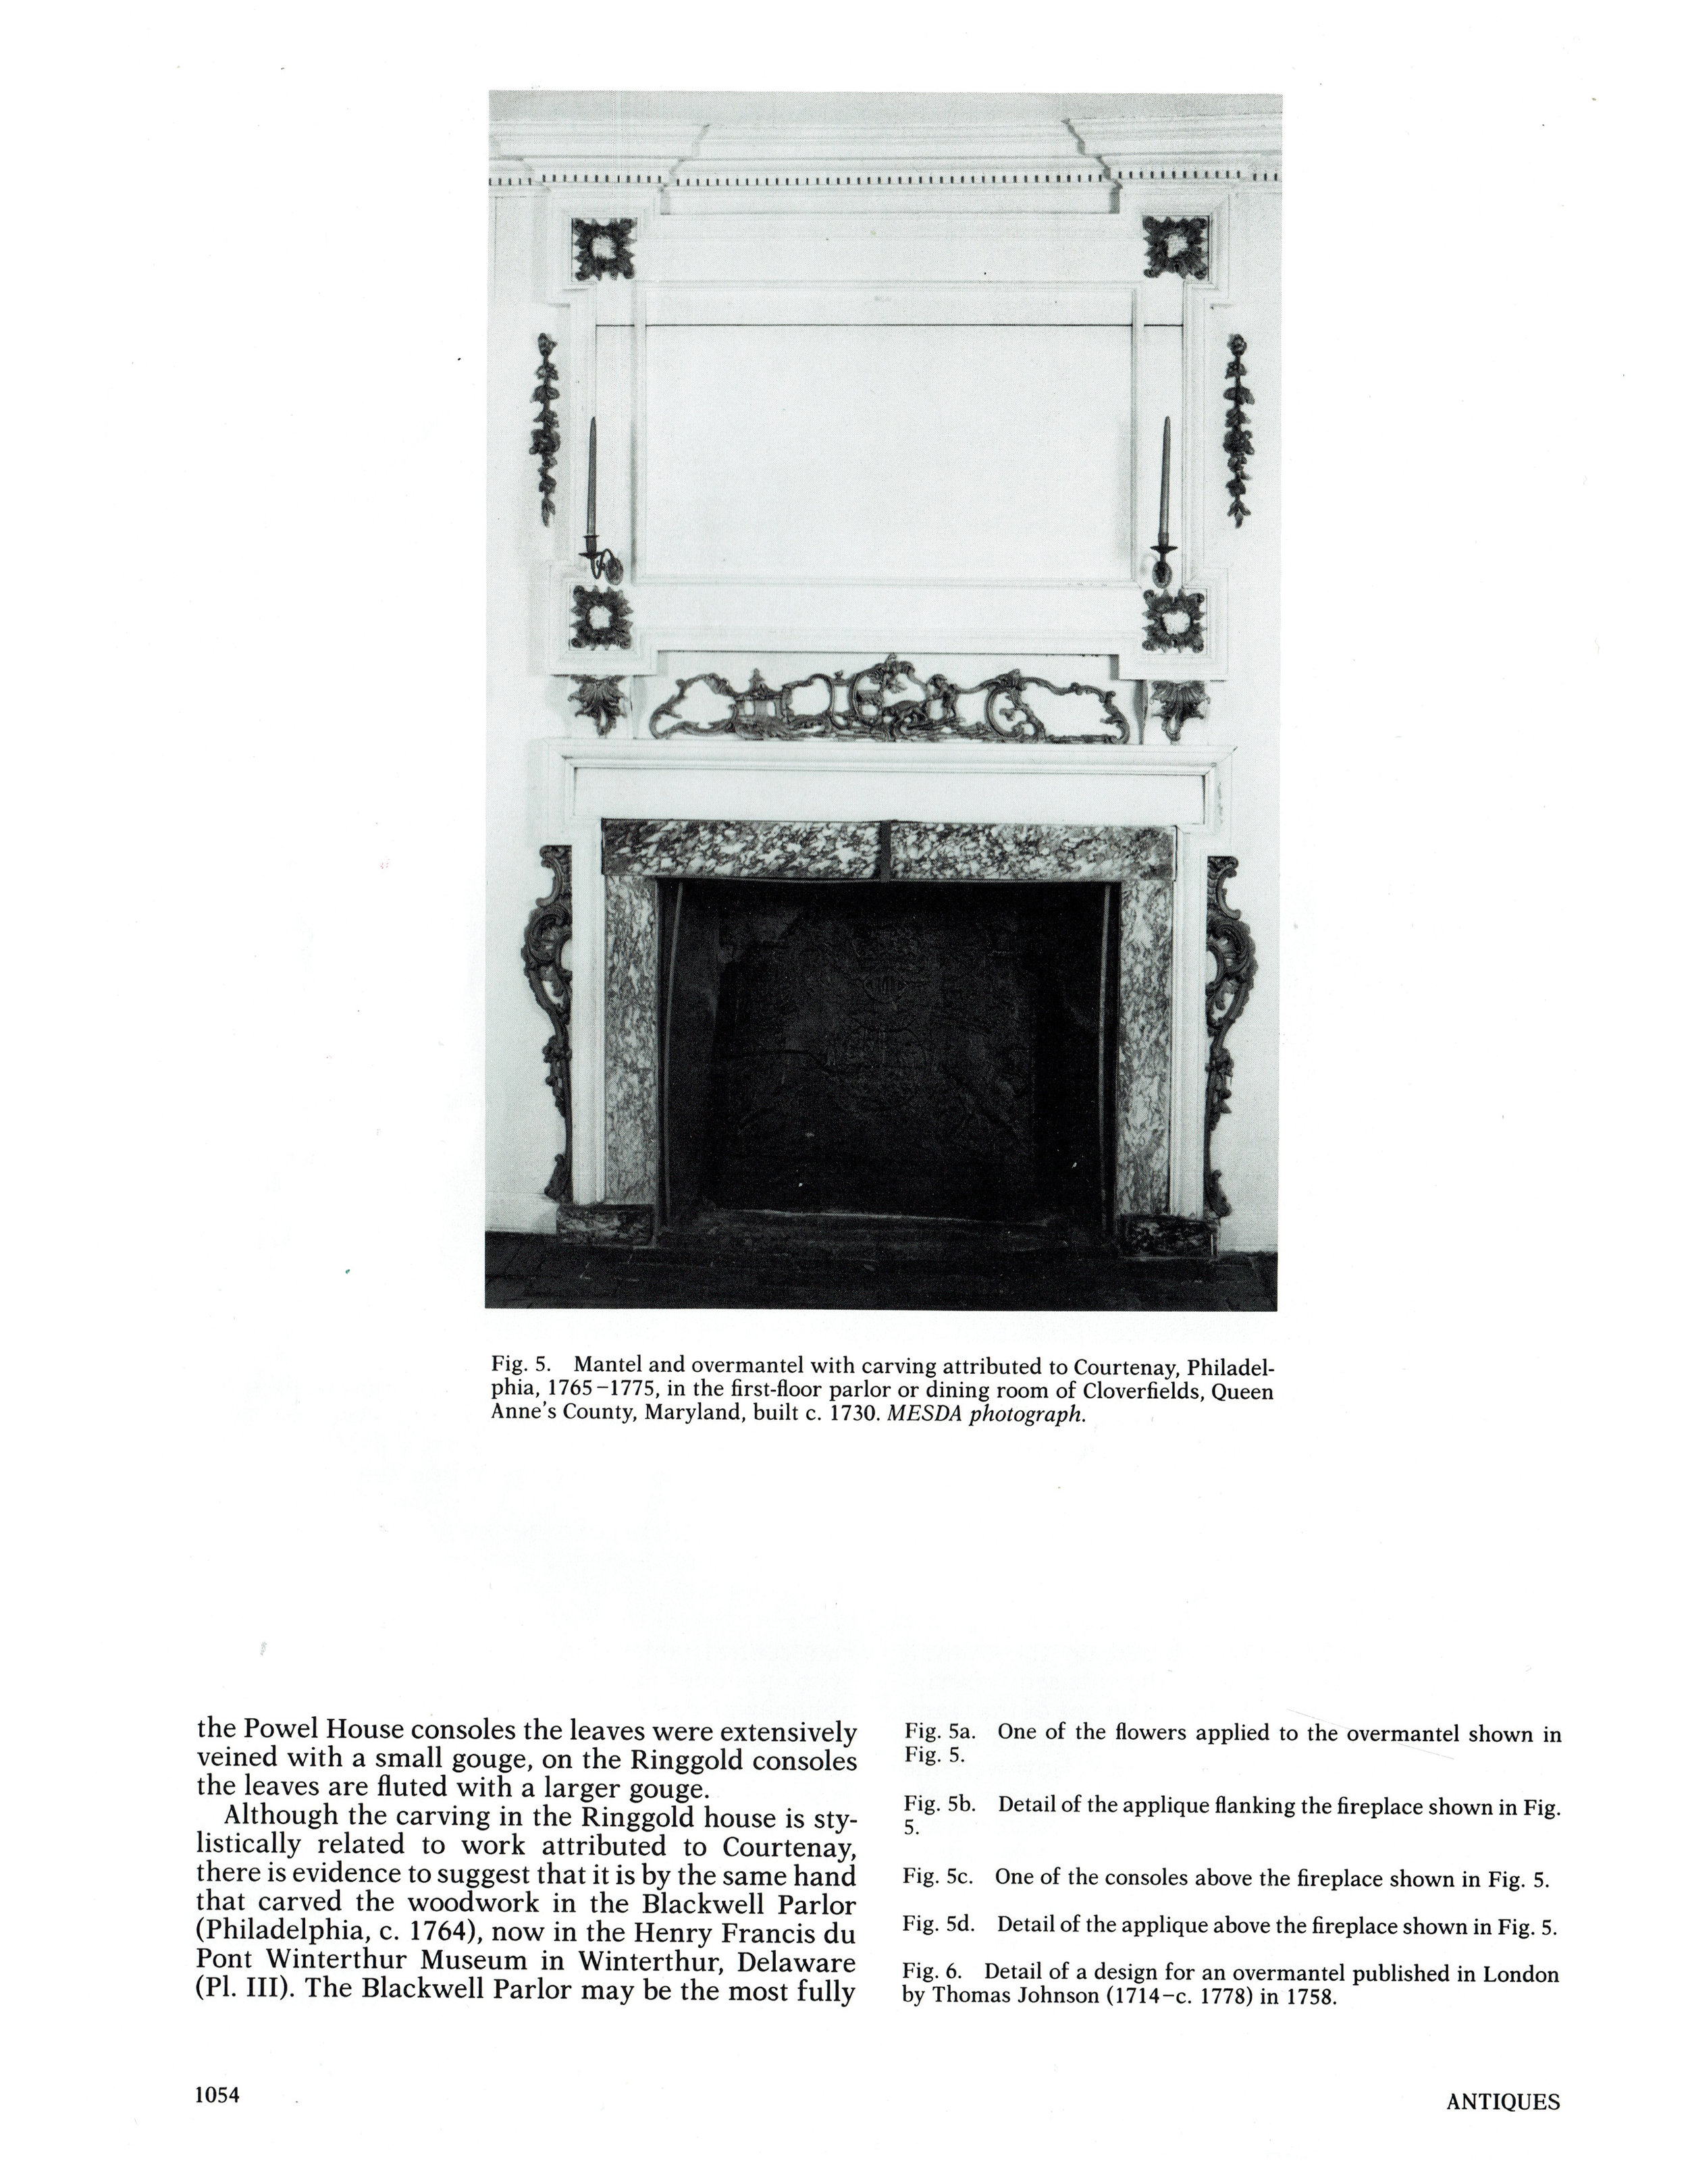 2018.01.16 CPF Antiques Article 12 - Pg1054.jpg